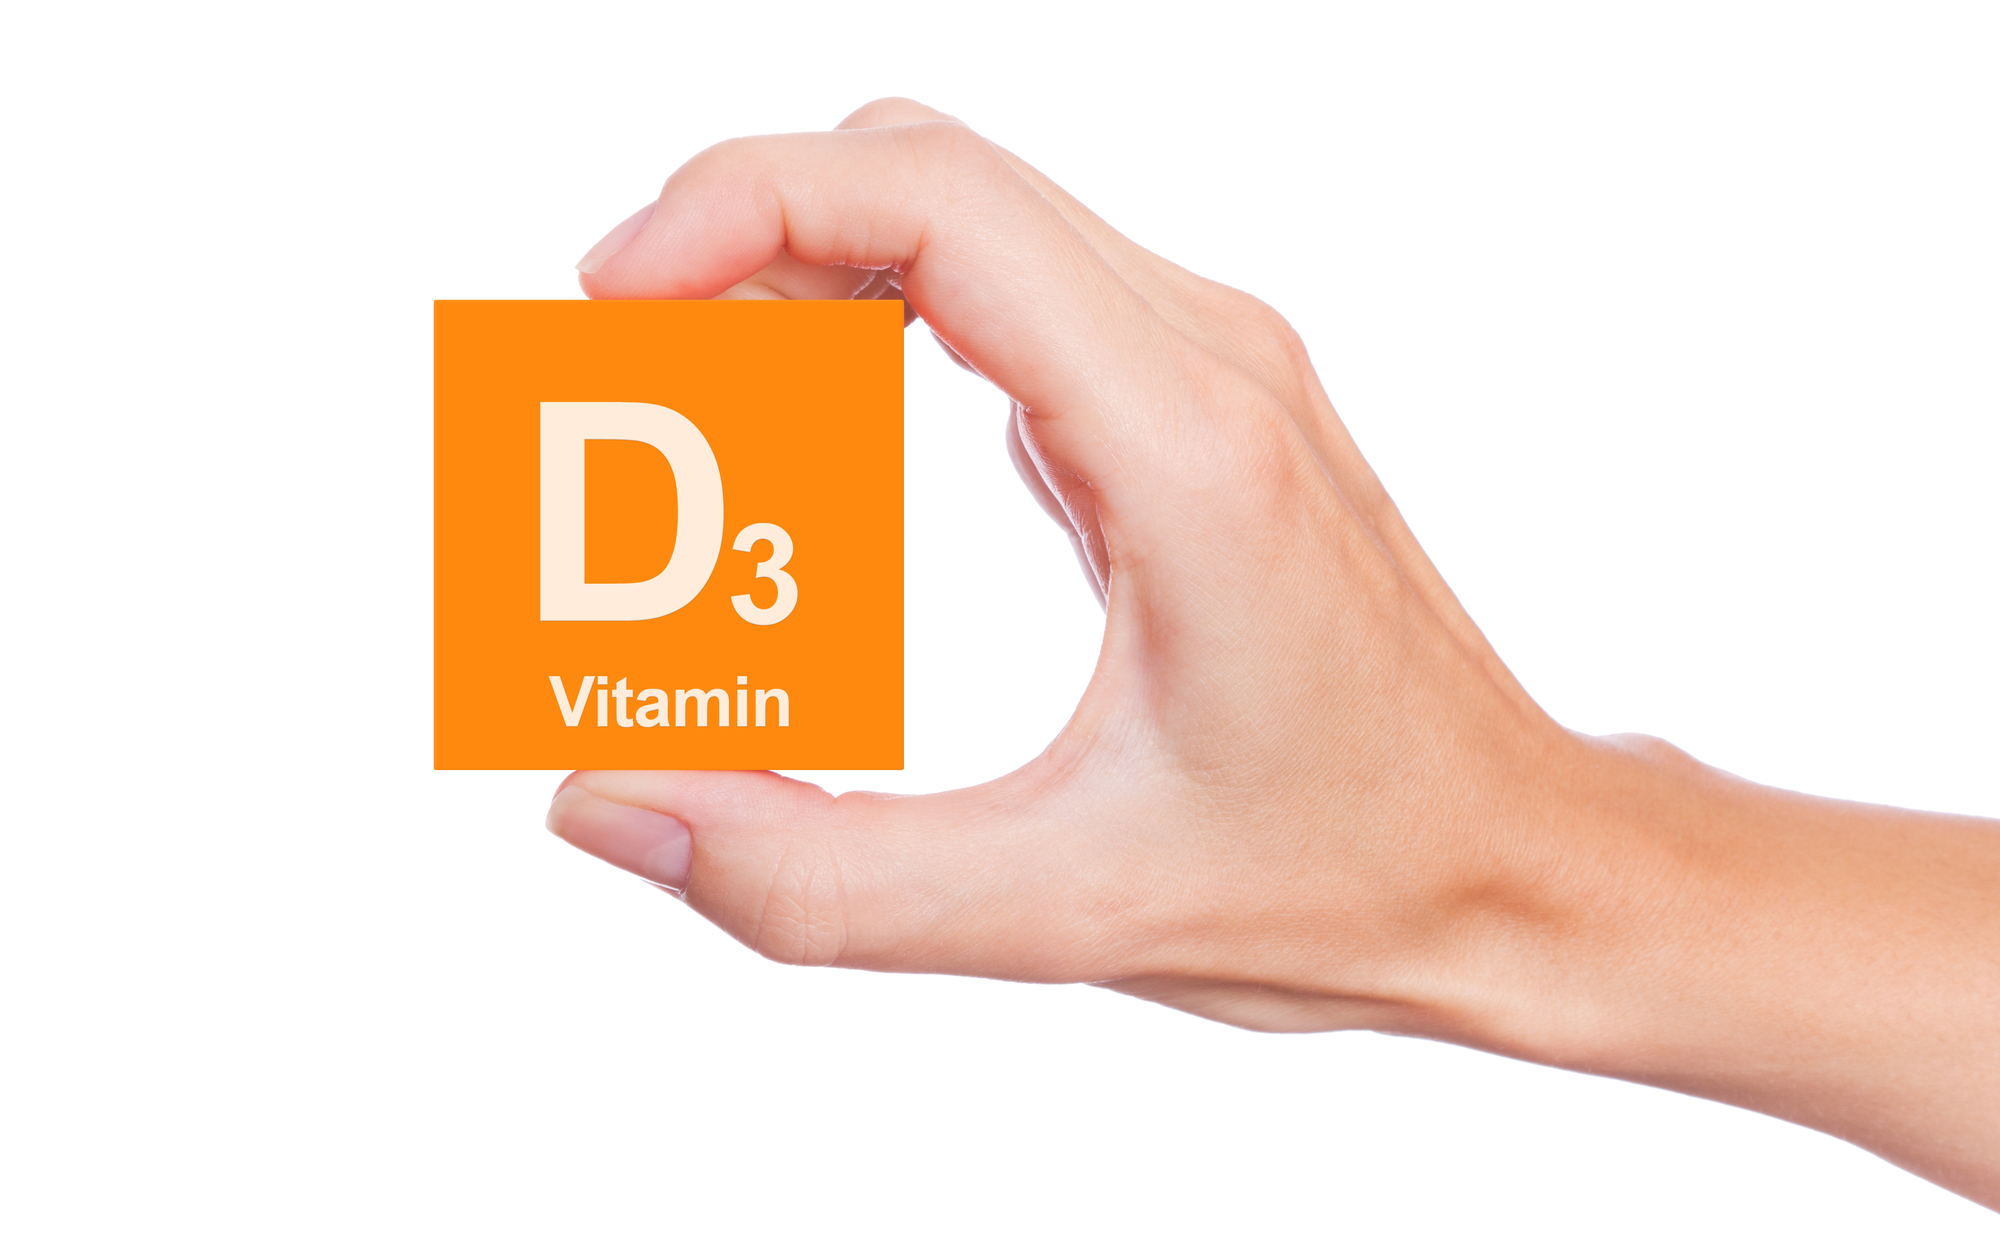 Vitamin D3 block - Vitamin D Deficiency. Is This You?